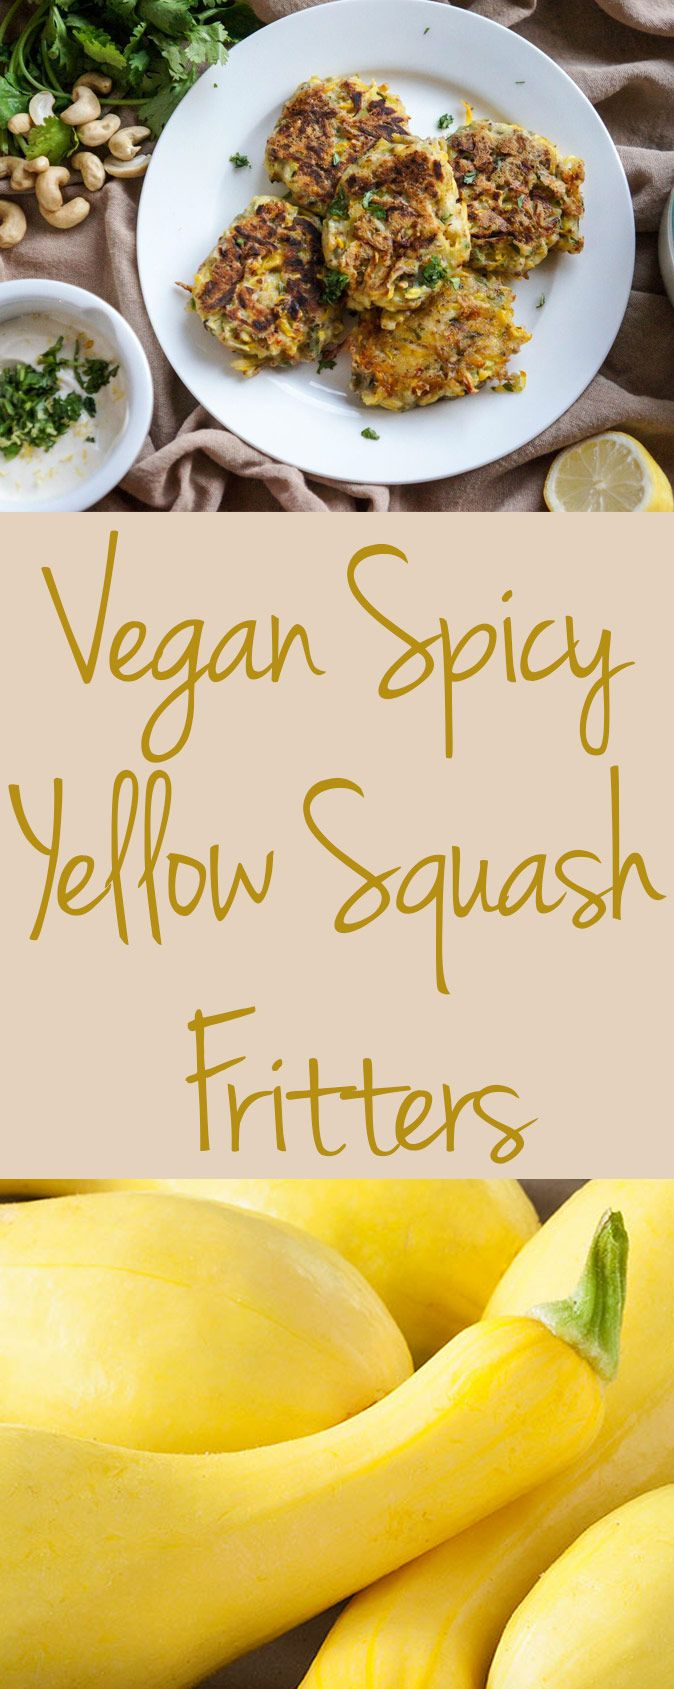 These Spicy Yellow Squash Fritters with Cilantro Dipping Sauce can double as a side or main course!